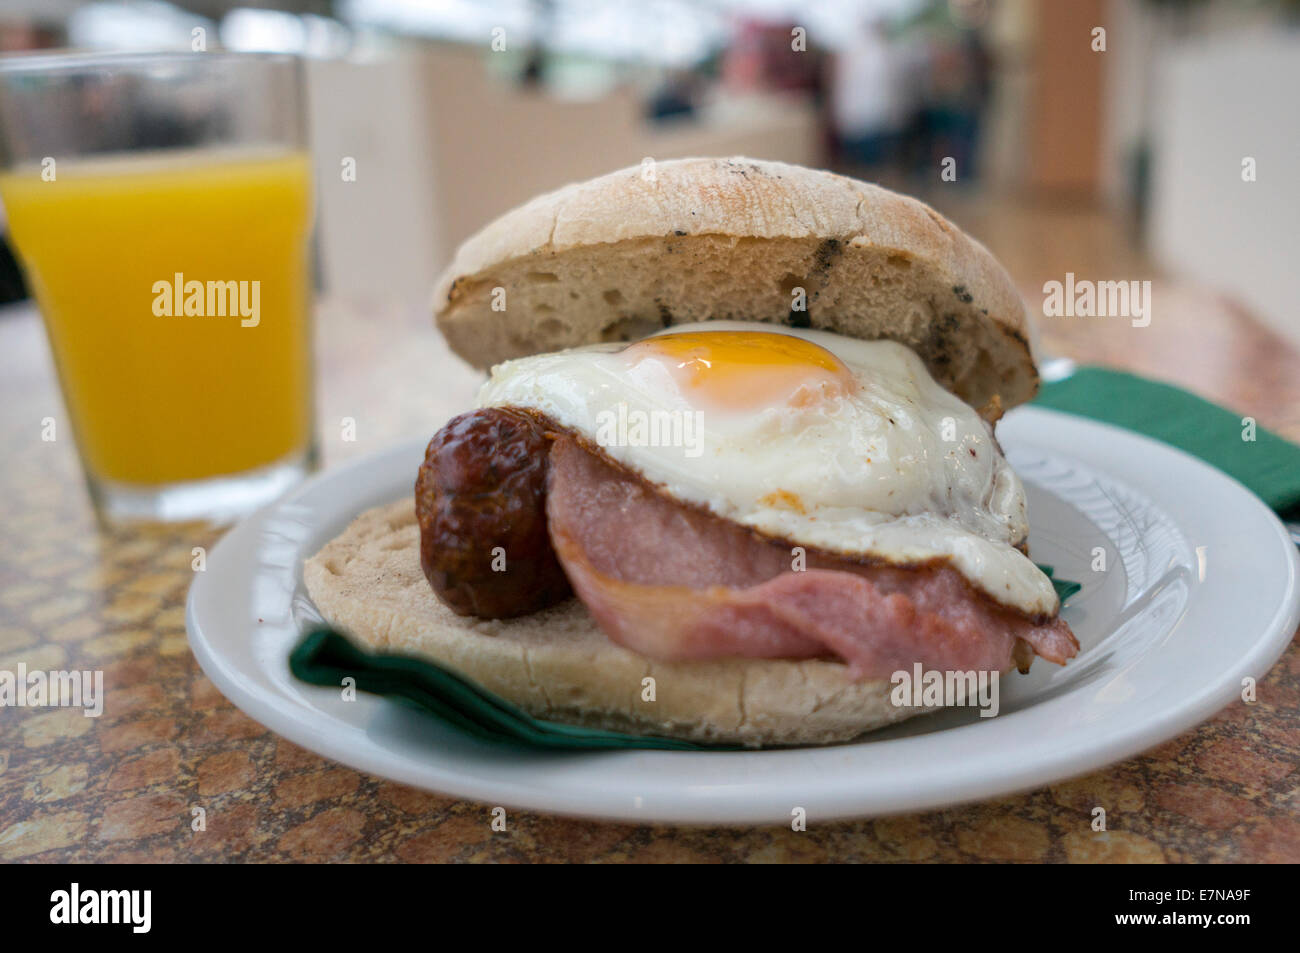 Sough dough roll, bacon & egg breakfast - Stock Image